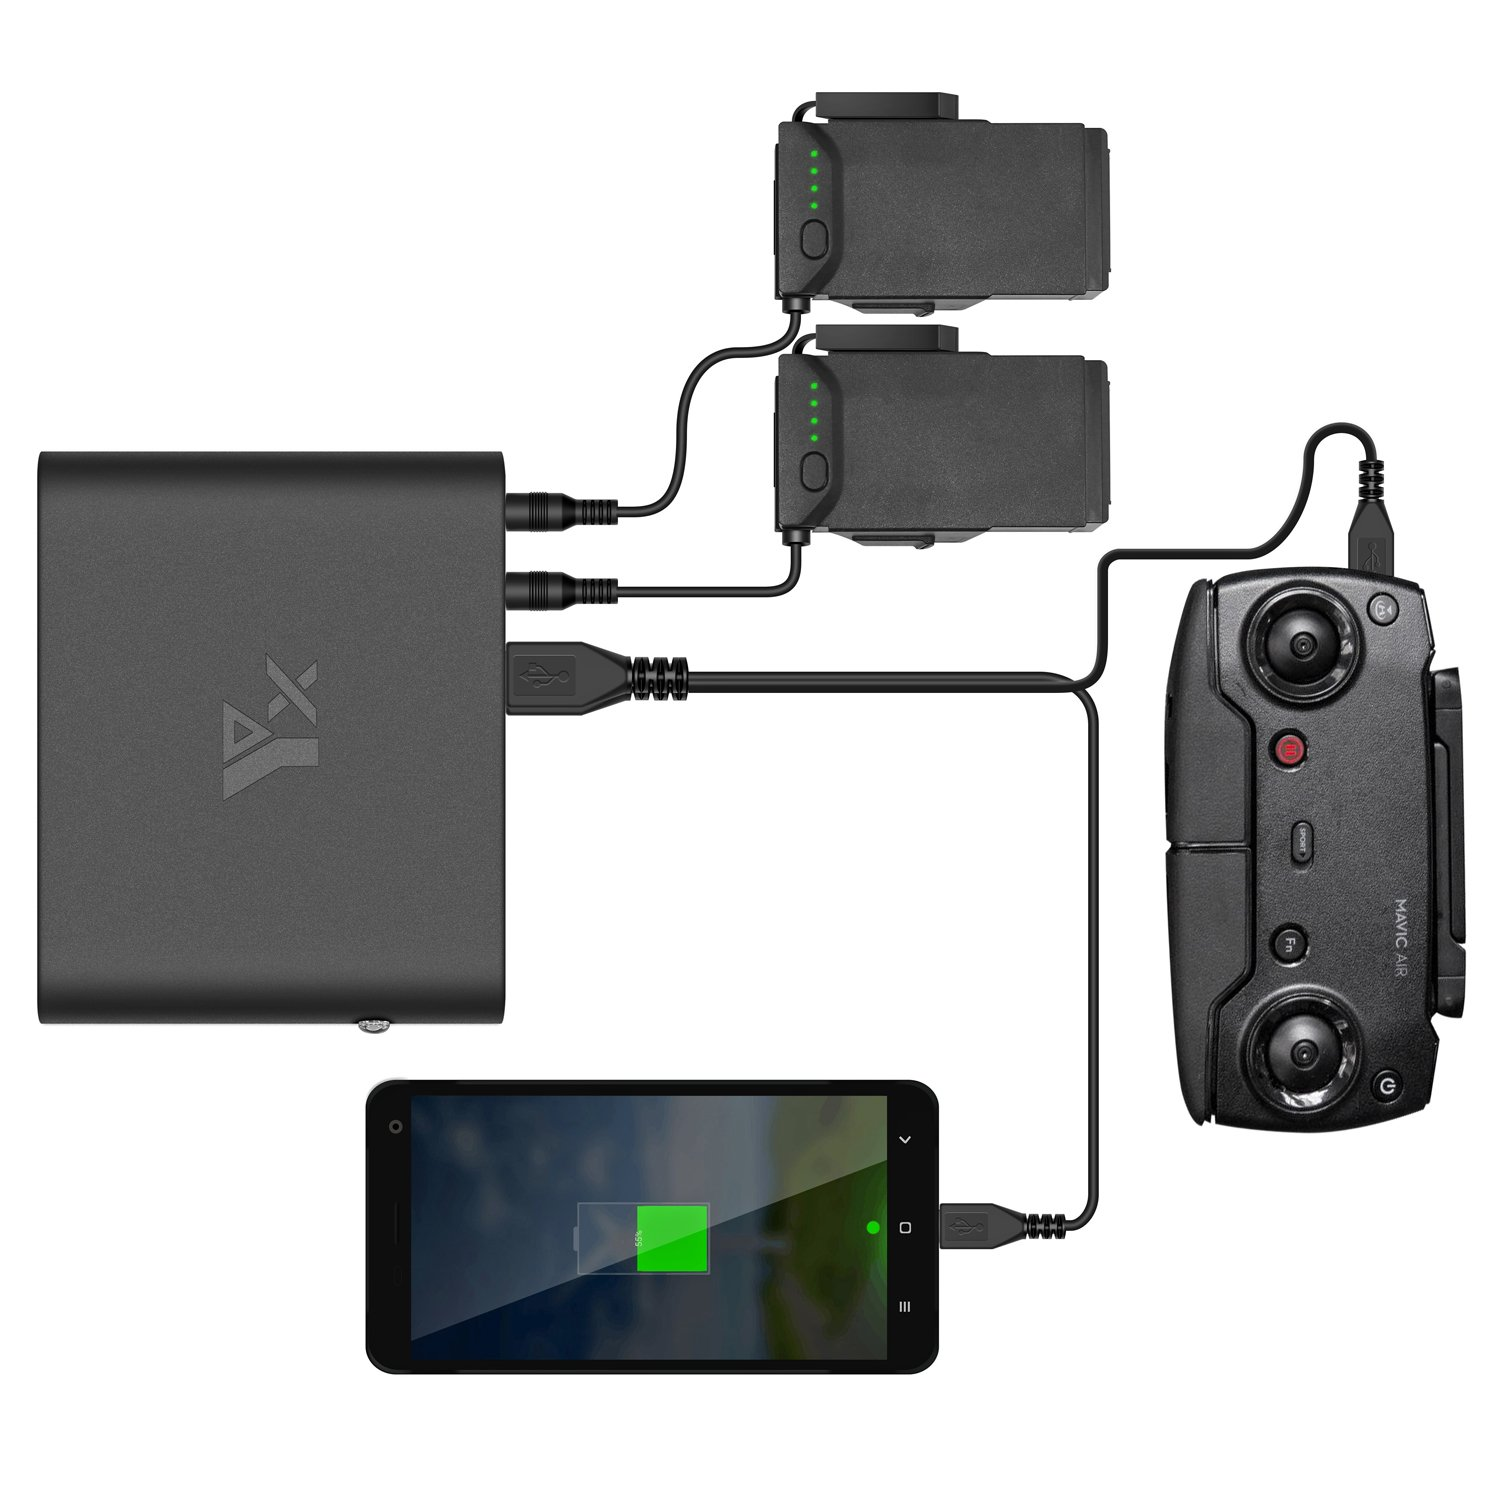 Anbee 25000mAh Power Bank for DJI Mavic Air Drone, Outdoor Portable Battery Charger